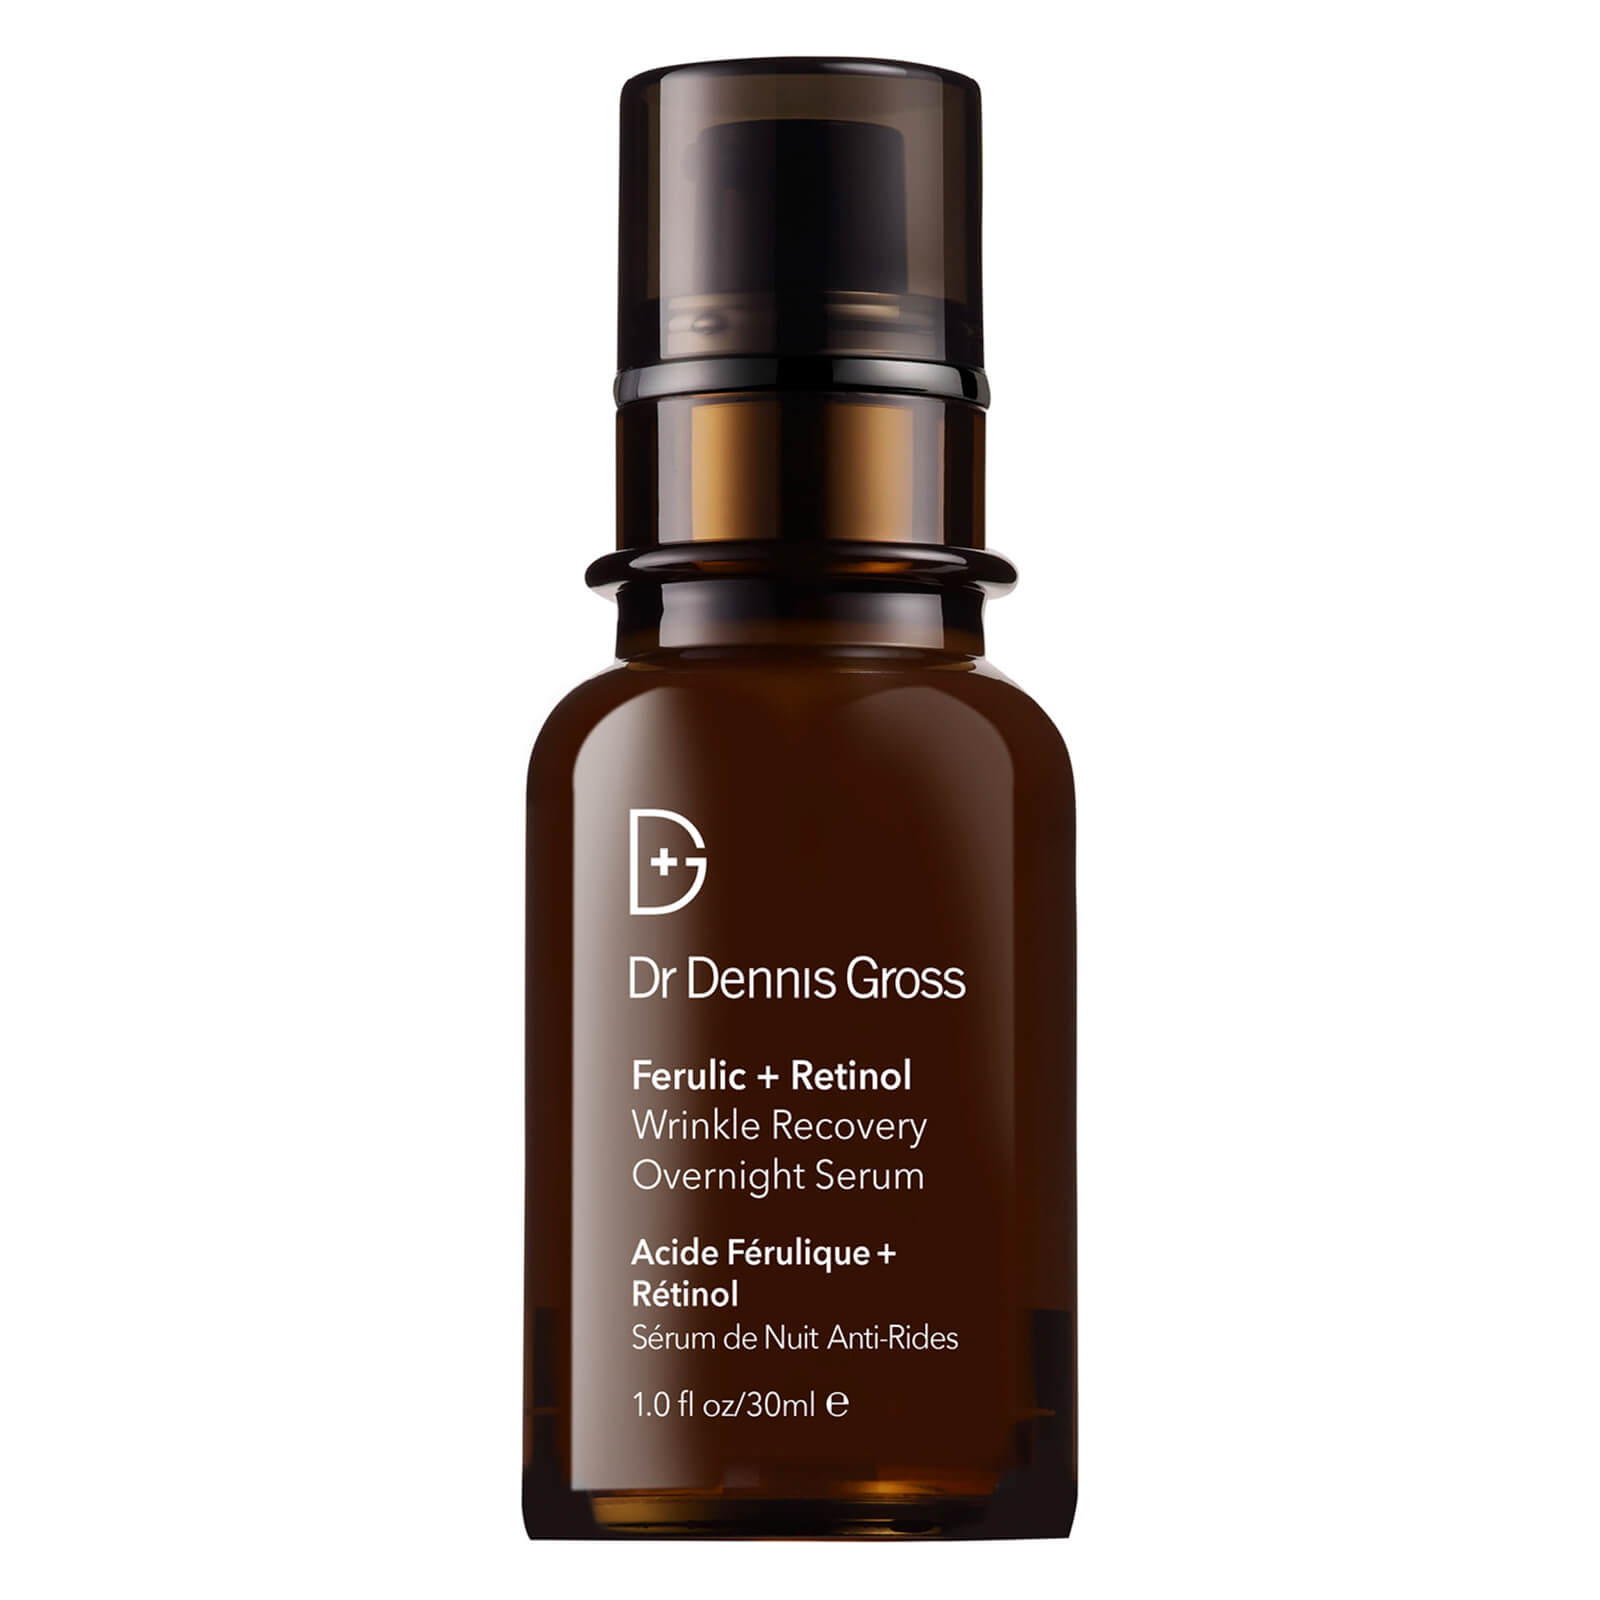 Dr Dennis Gross Skincare Ferulic and Retinol Wrinkle Recovery Overnight Serum 30ml